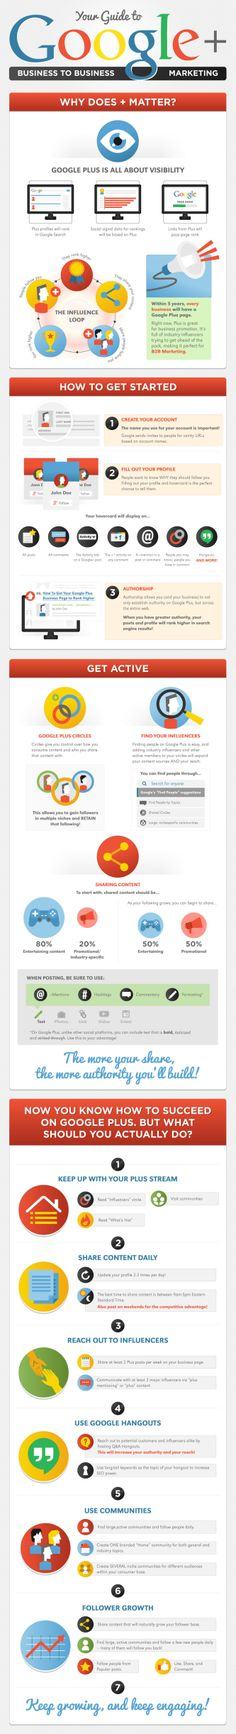 Come fare #business su Google+ [ #infografica ]